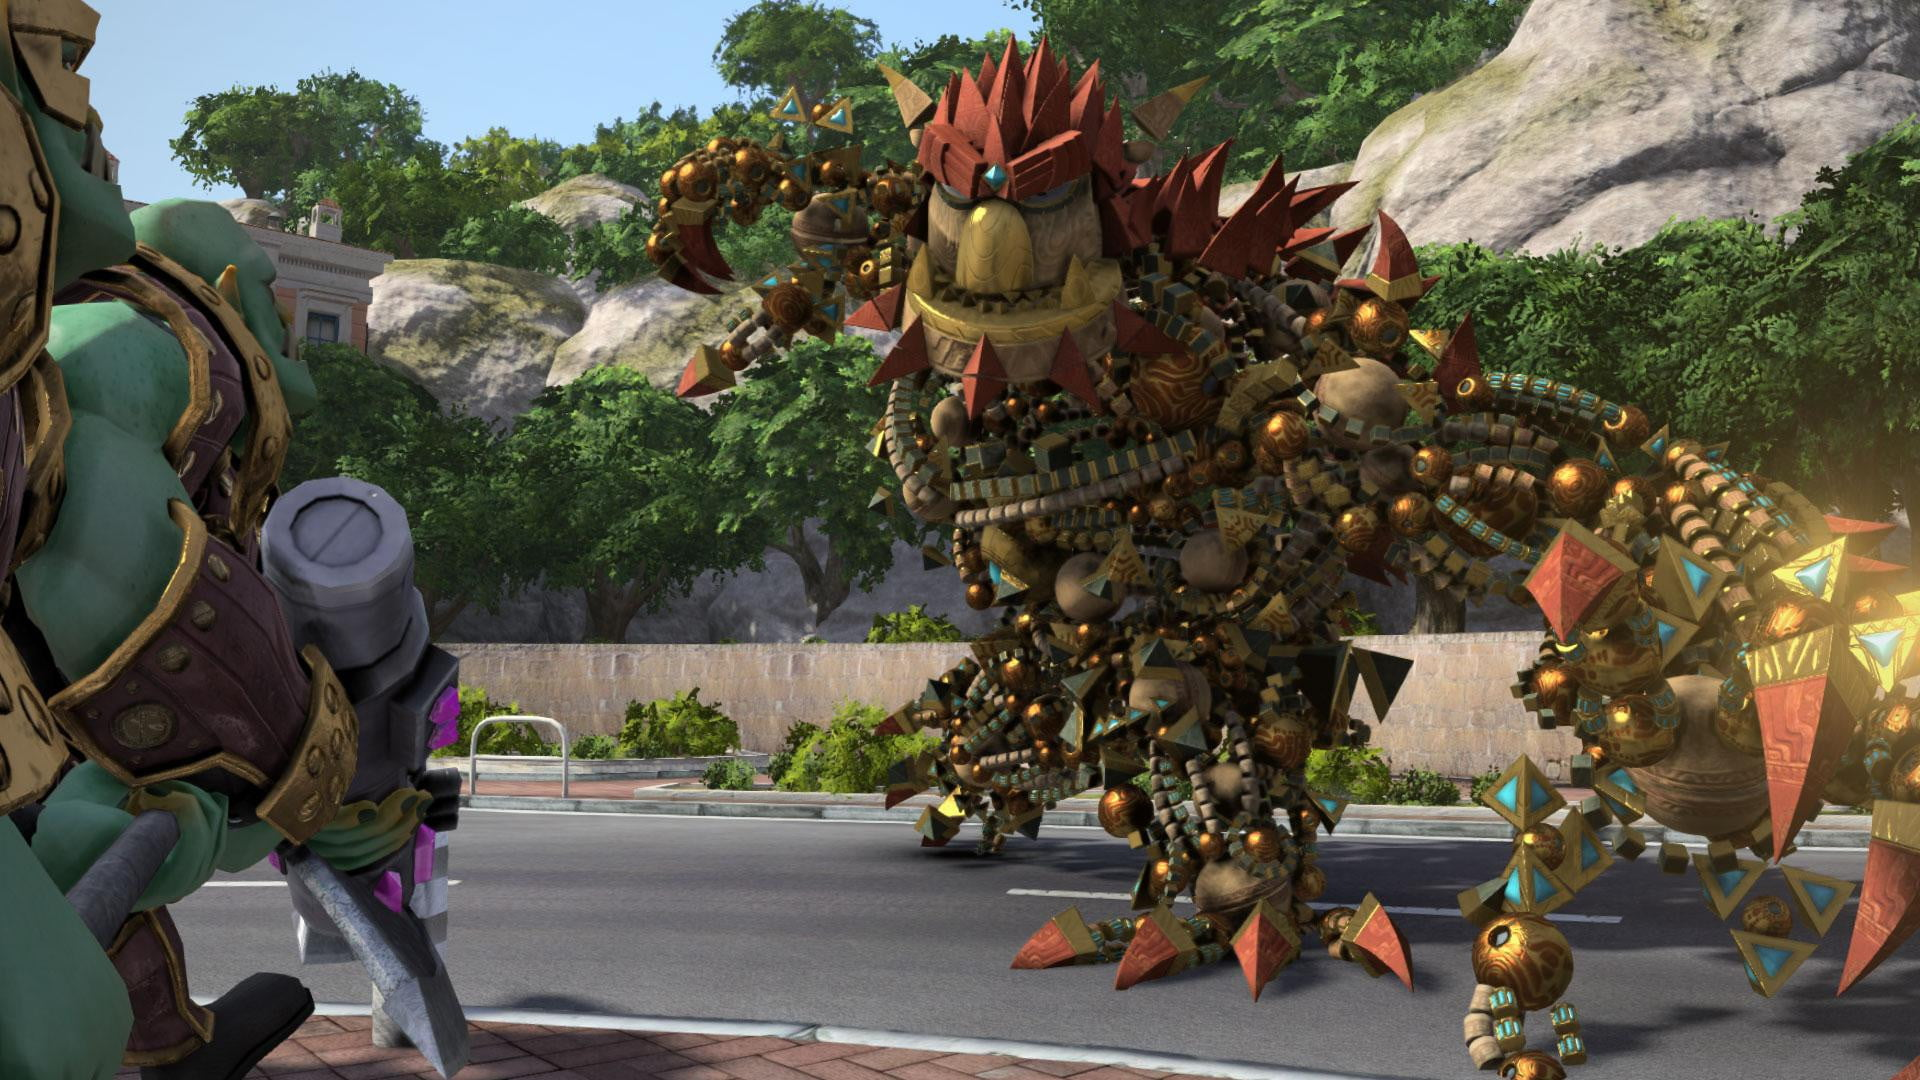 Things You Should Know Before Starting Knack 2